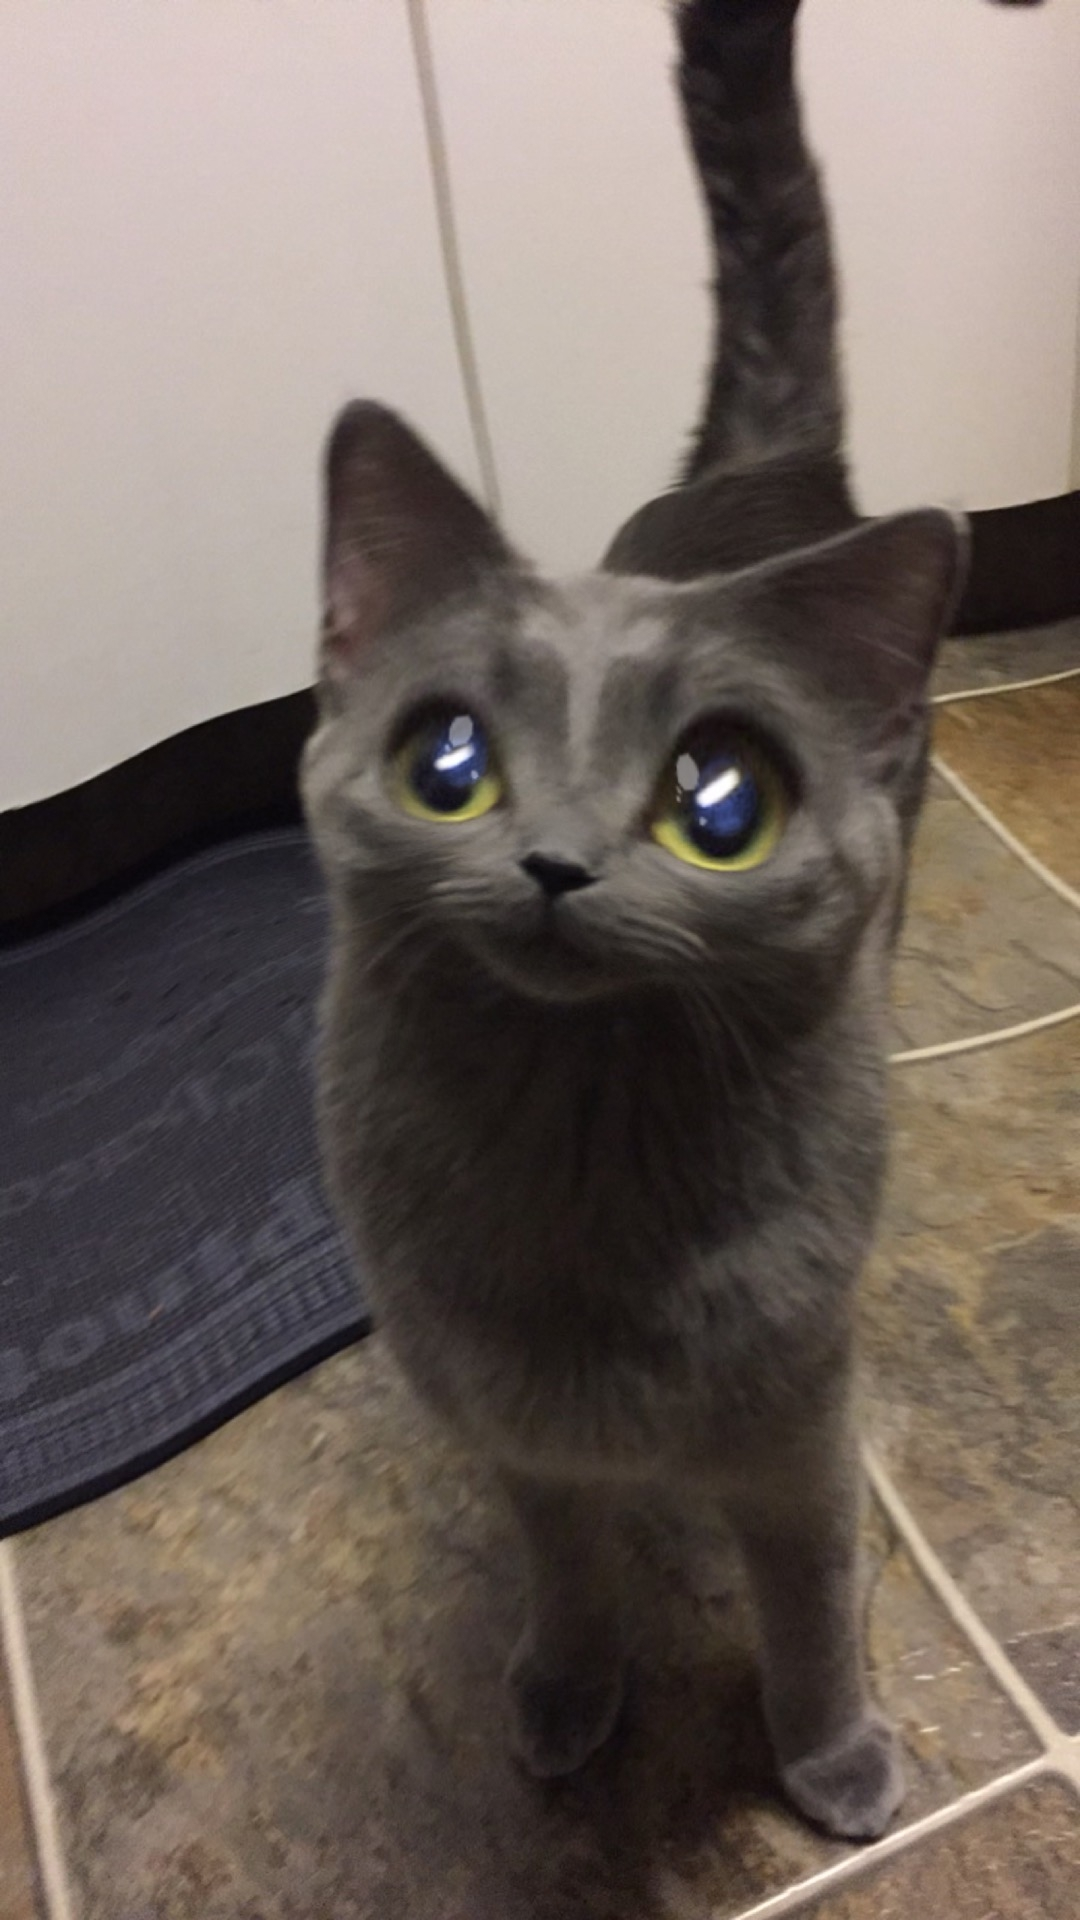 Snapchat Filters on Your Pets!